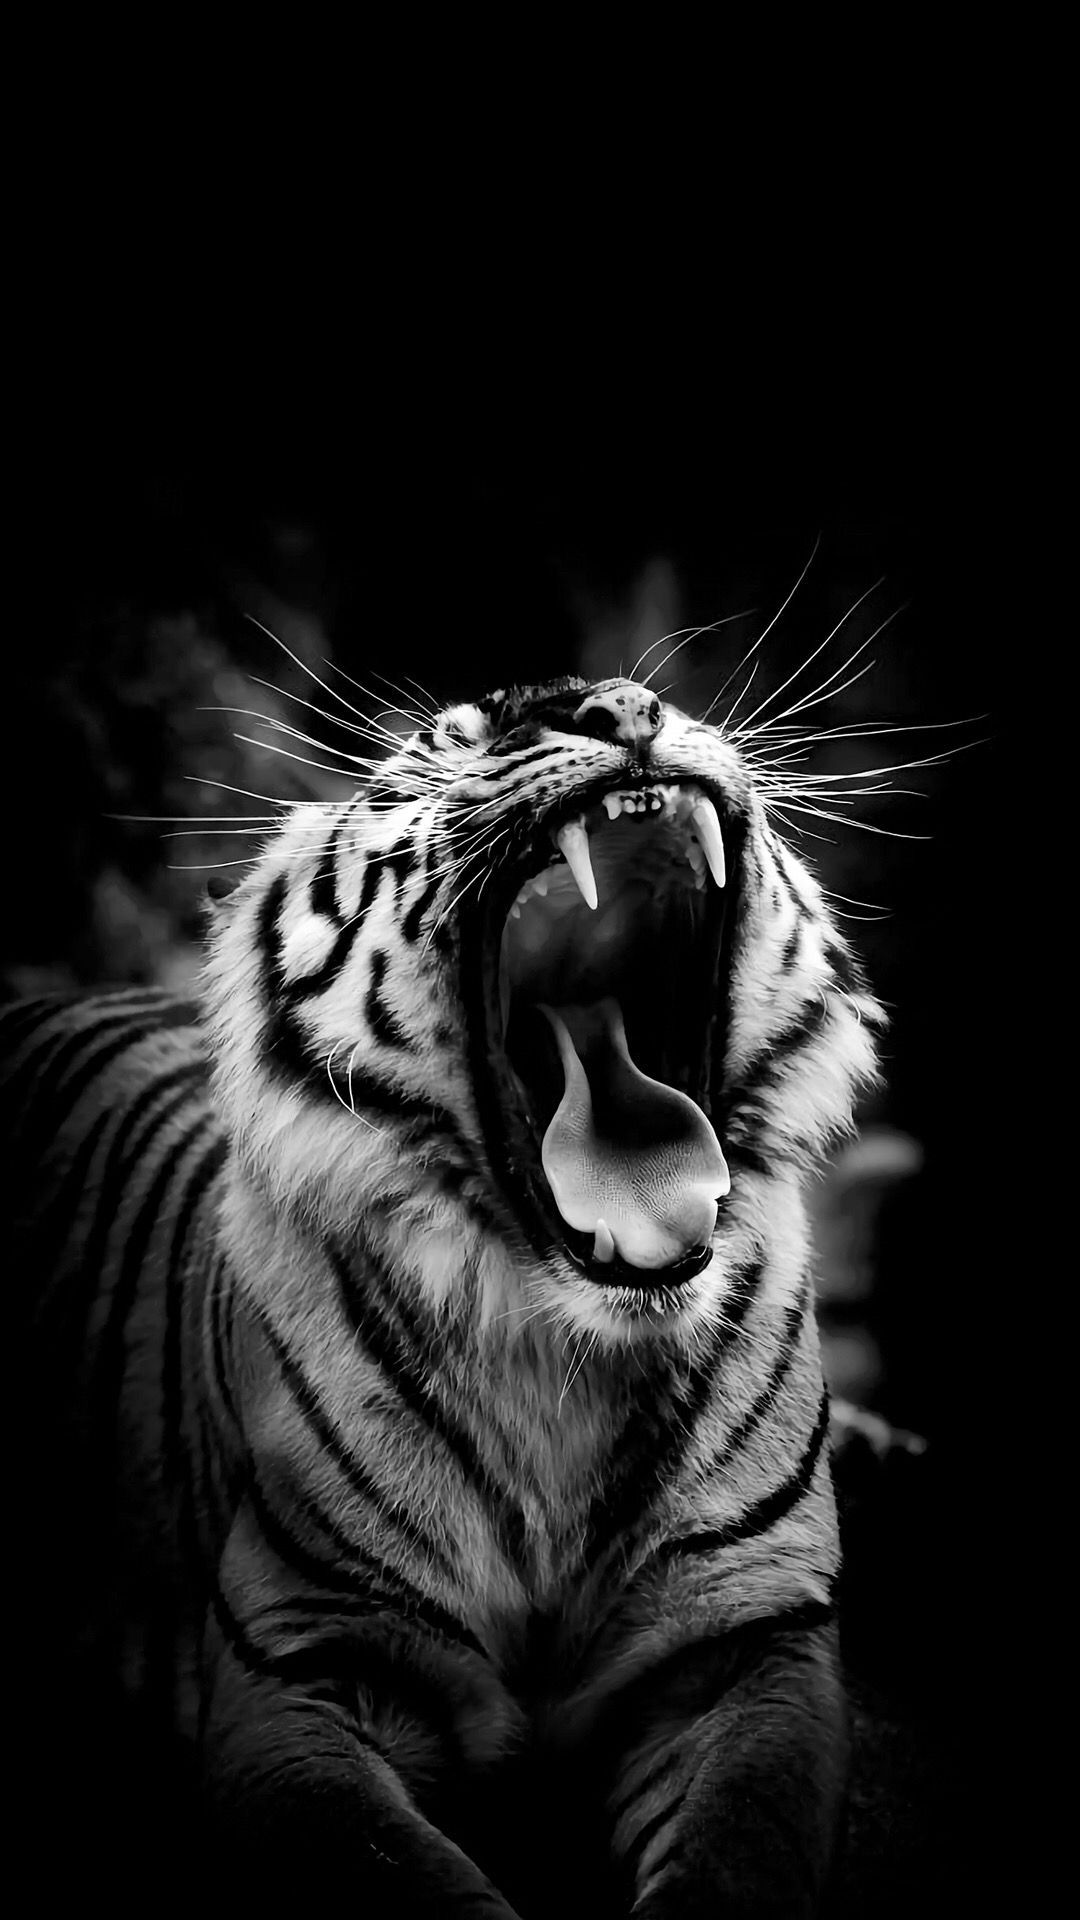 Black And White Tiger Image On High Definition Wallpaper On Flowerswallpaper Info If You Like It Iphone Tiger Images Wild Animal Wallpaper Tiger Photography